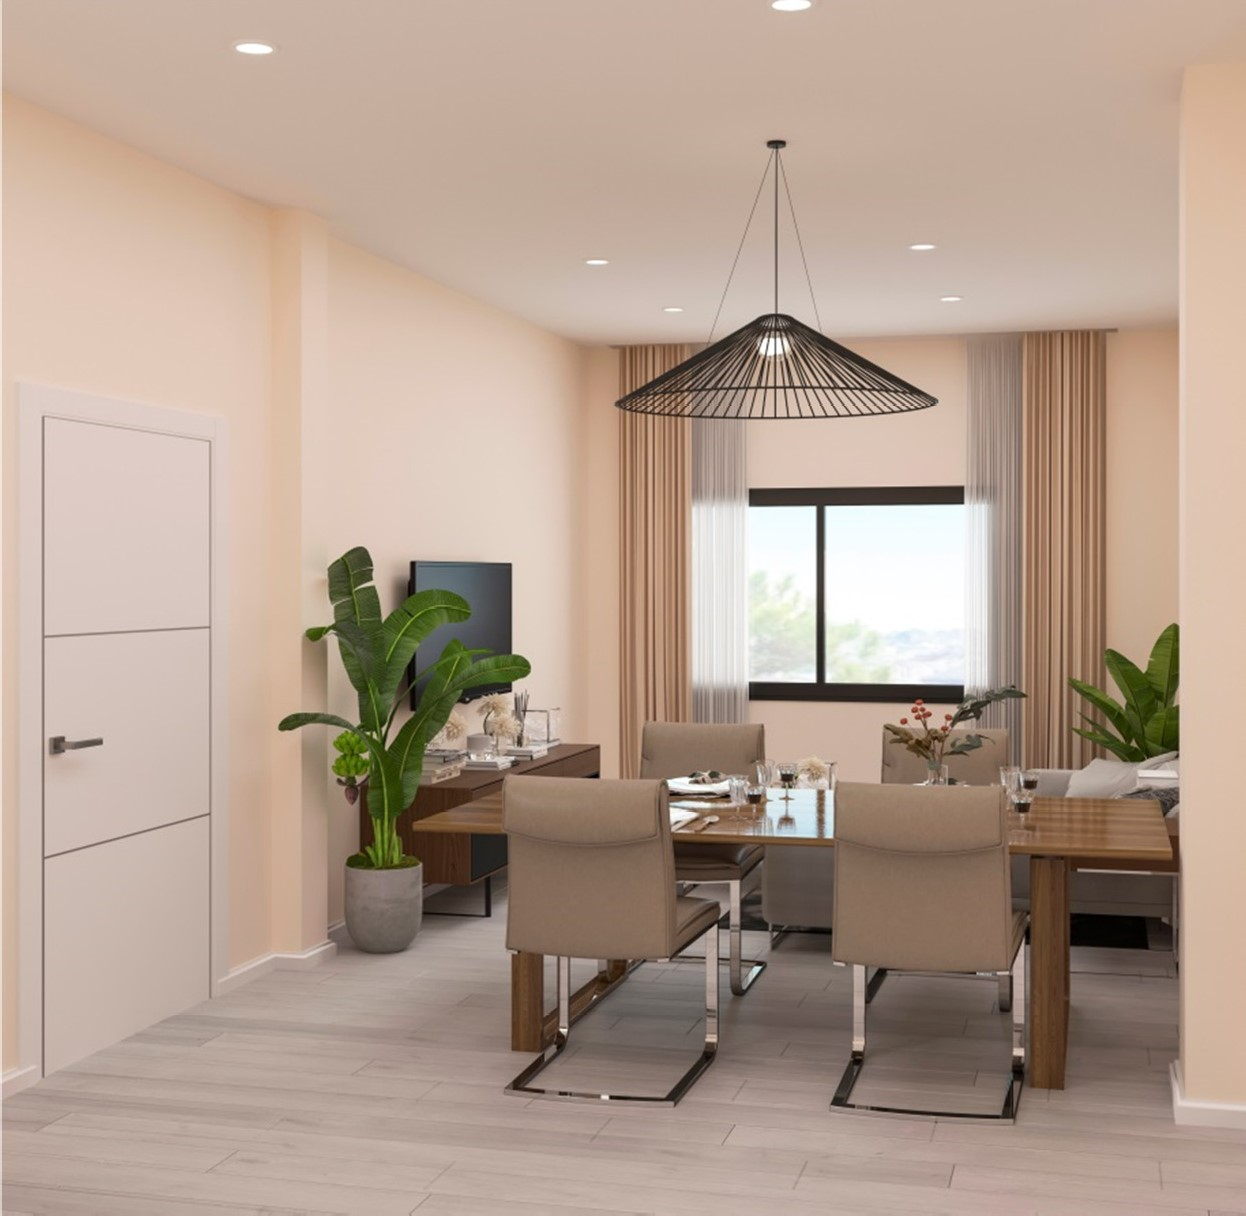 Apartment,For Sale,1152